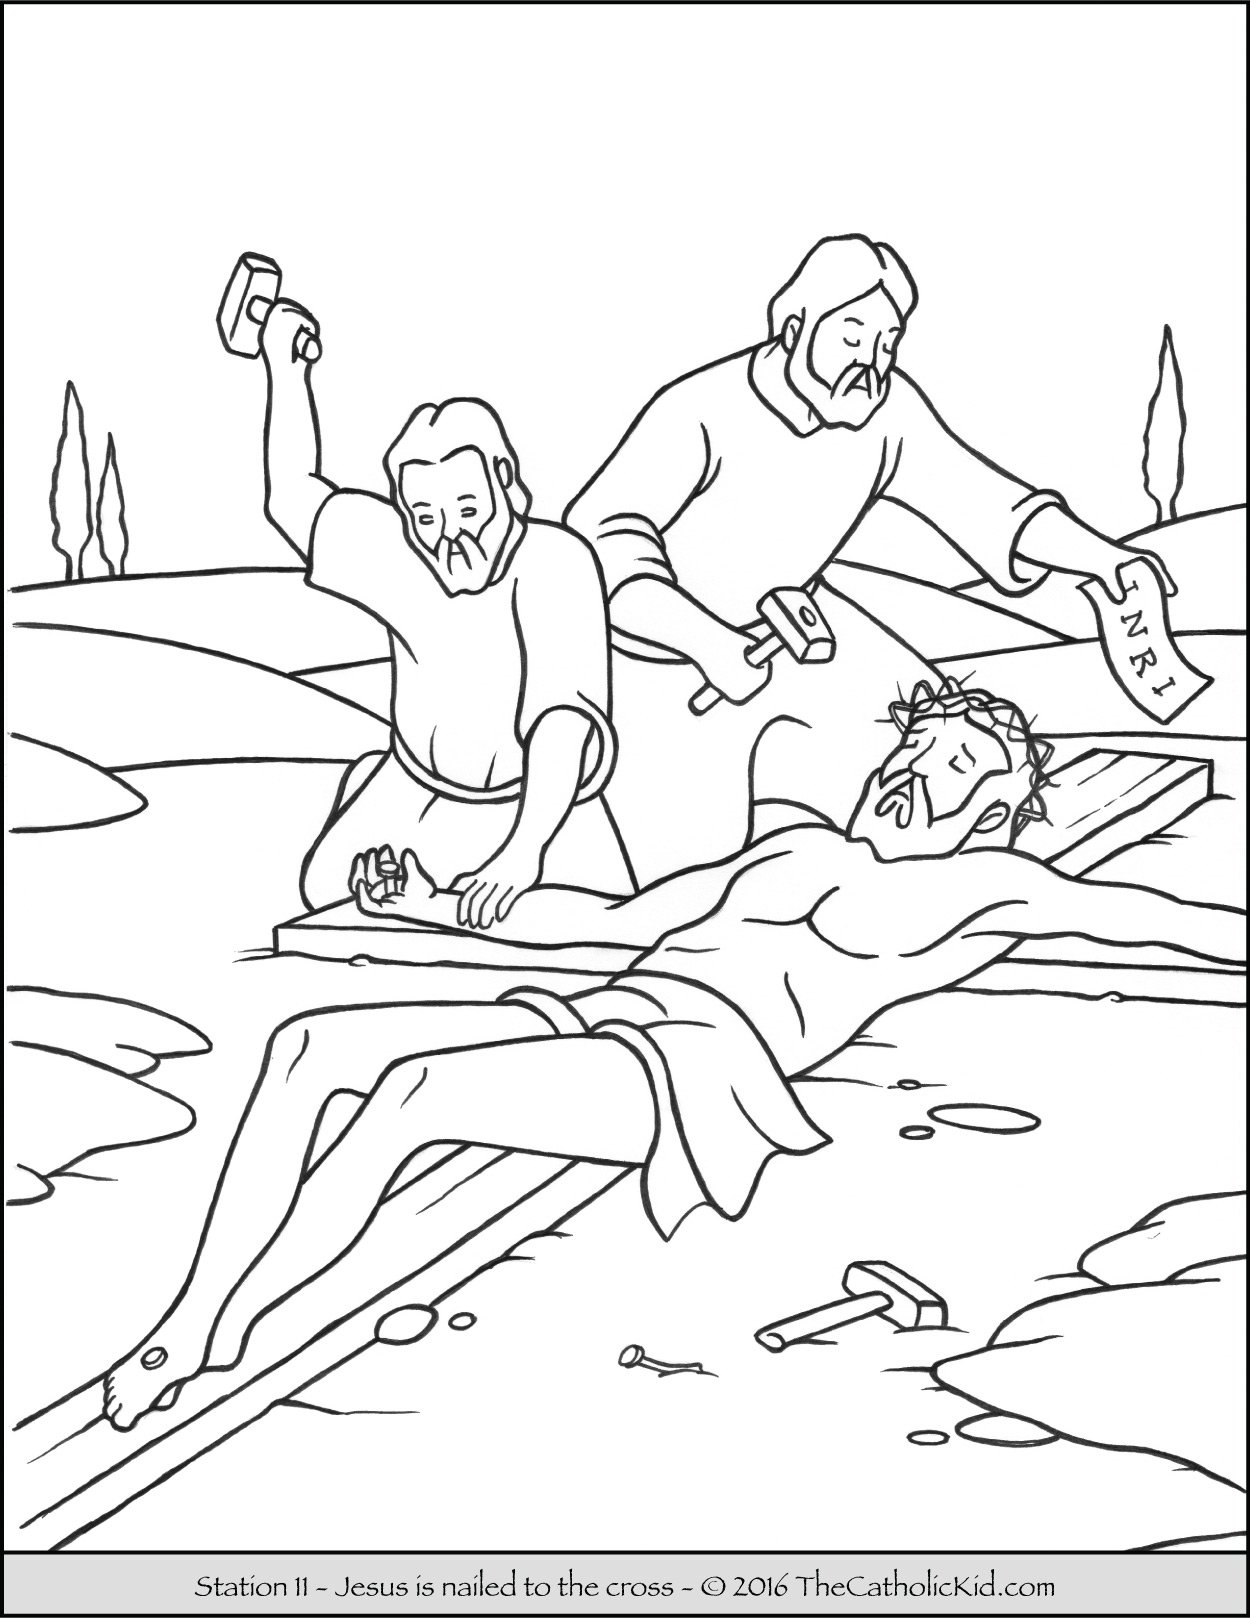 Stations Of The Cross Coloring Pages Best Stations Of The Cross Coloring Pages  The Catholic Kid Decorating Design